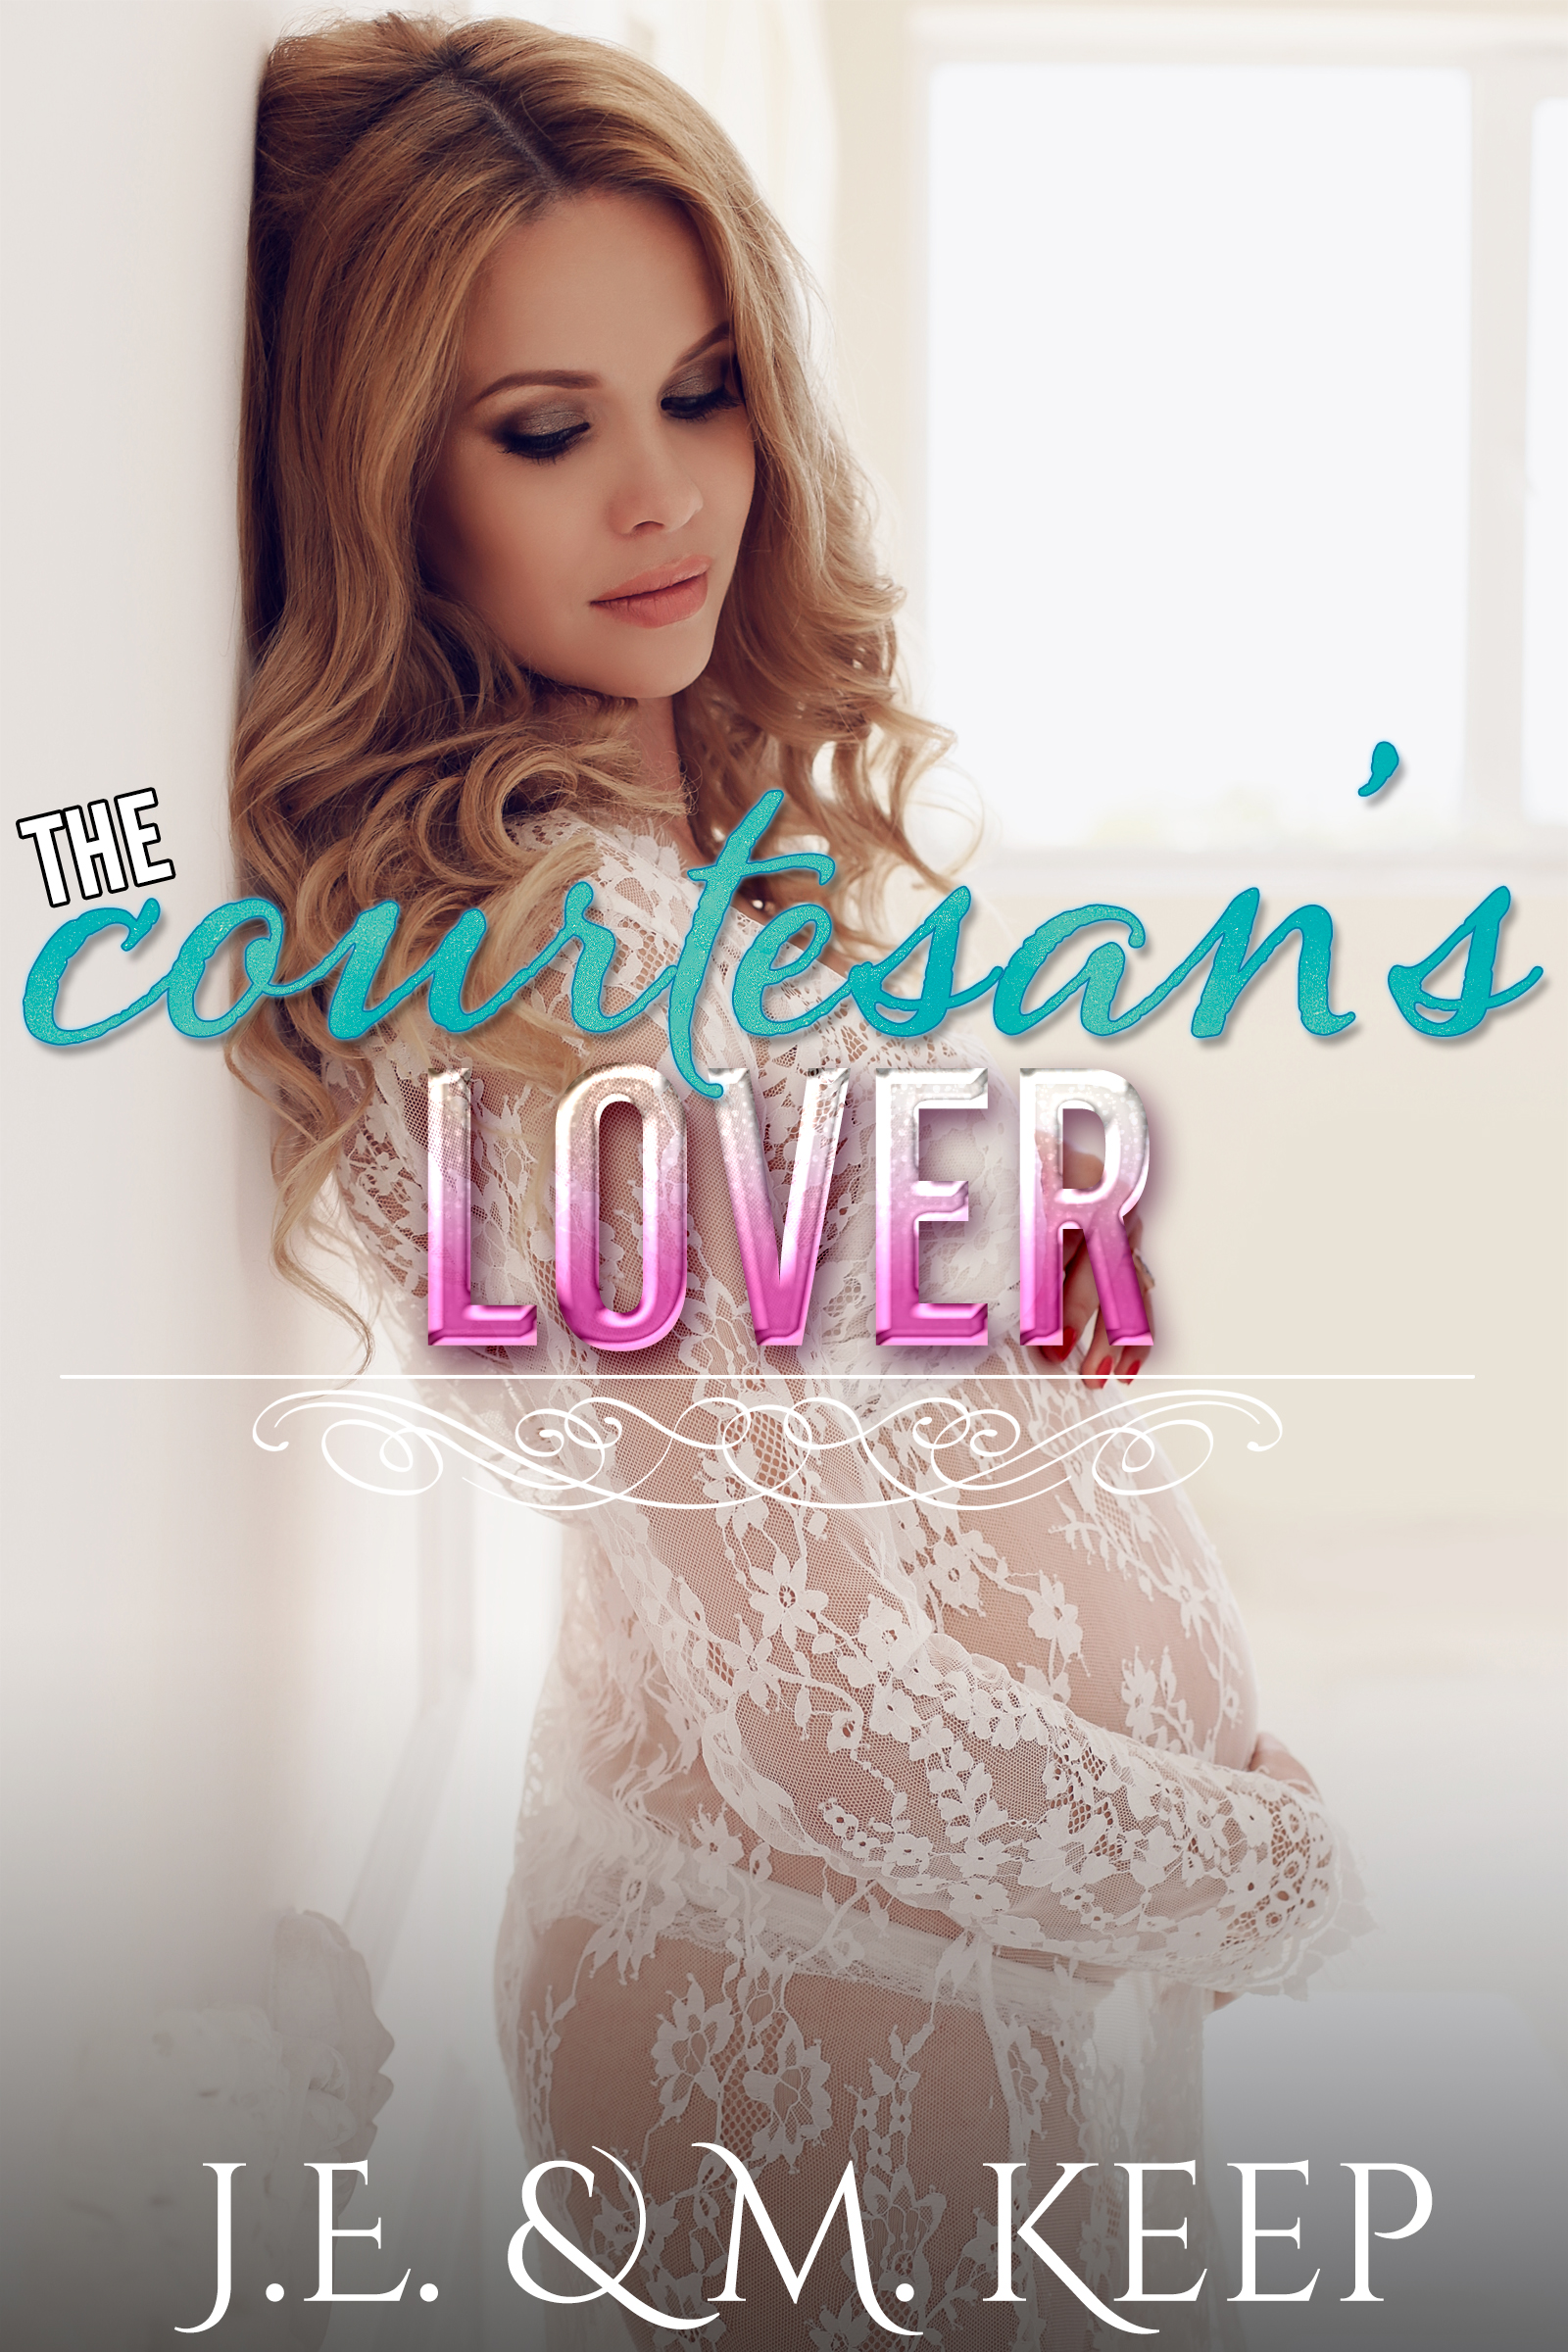 The Courtesan's Lover: A short